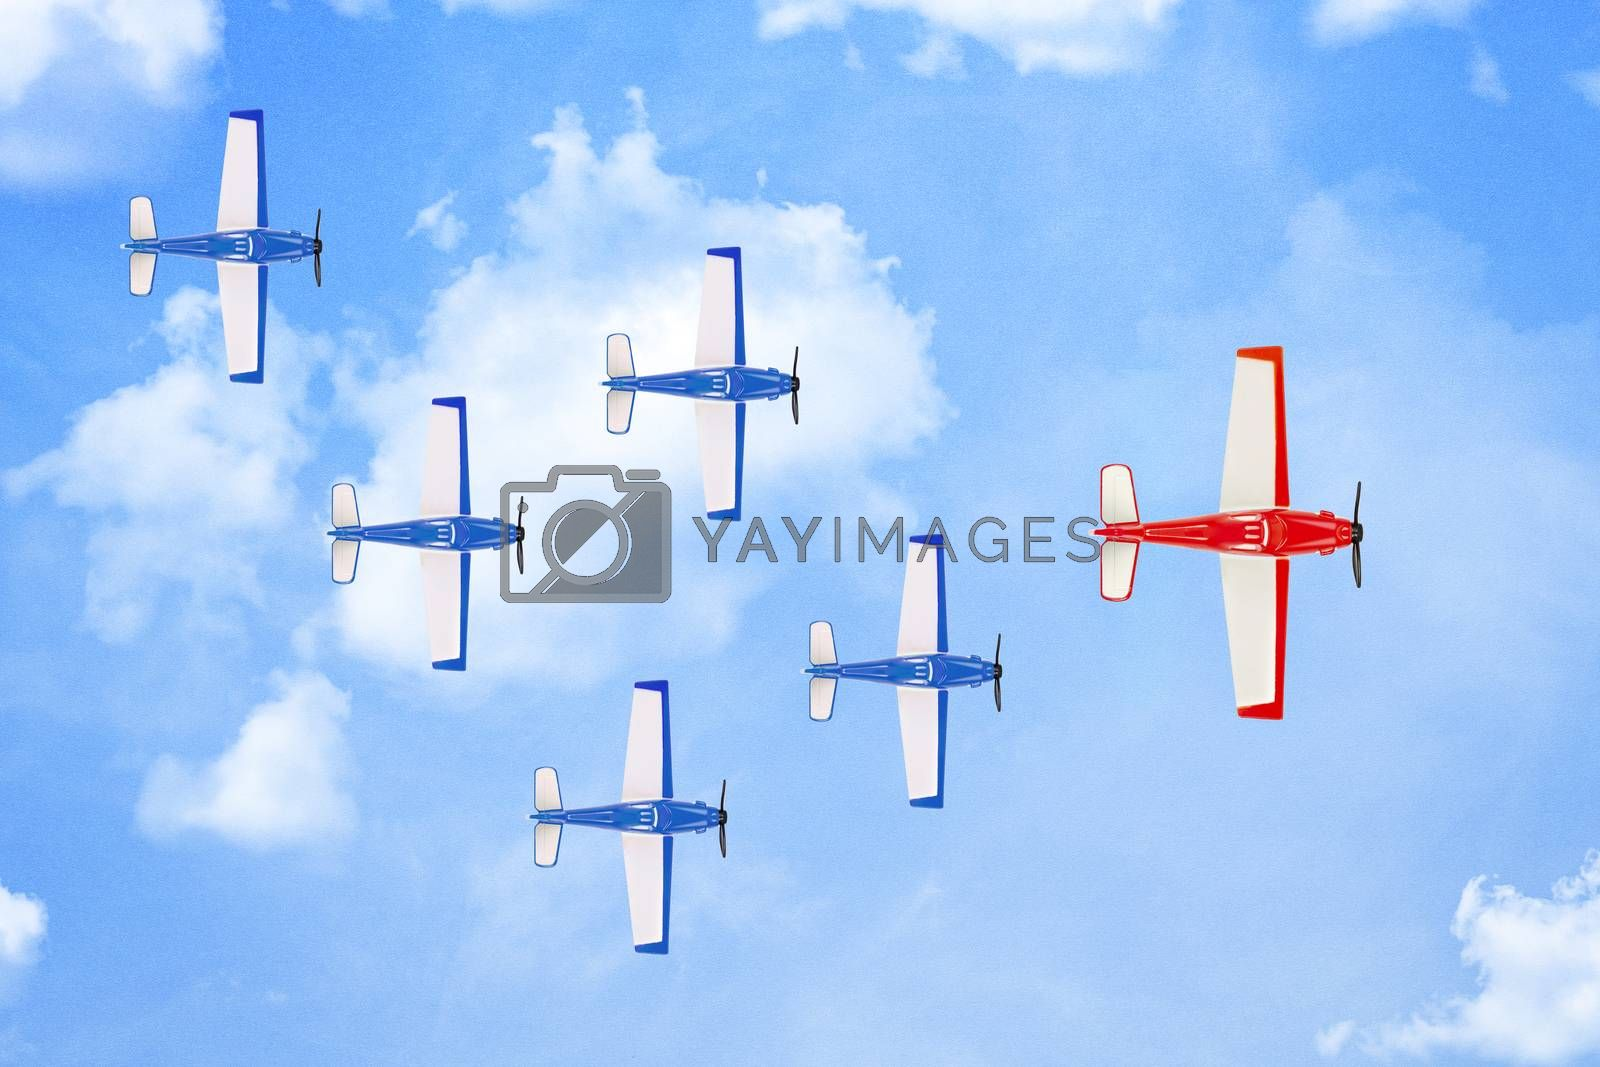 red plane leading a formation of smaller planes on paper surface with clouds, leadership concept